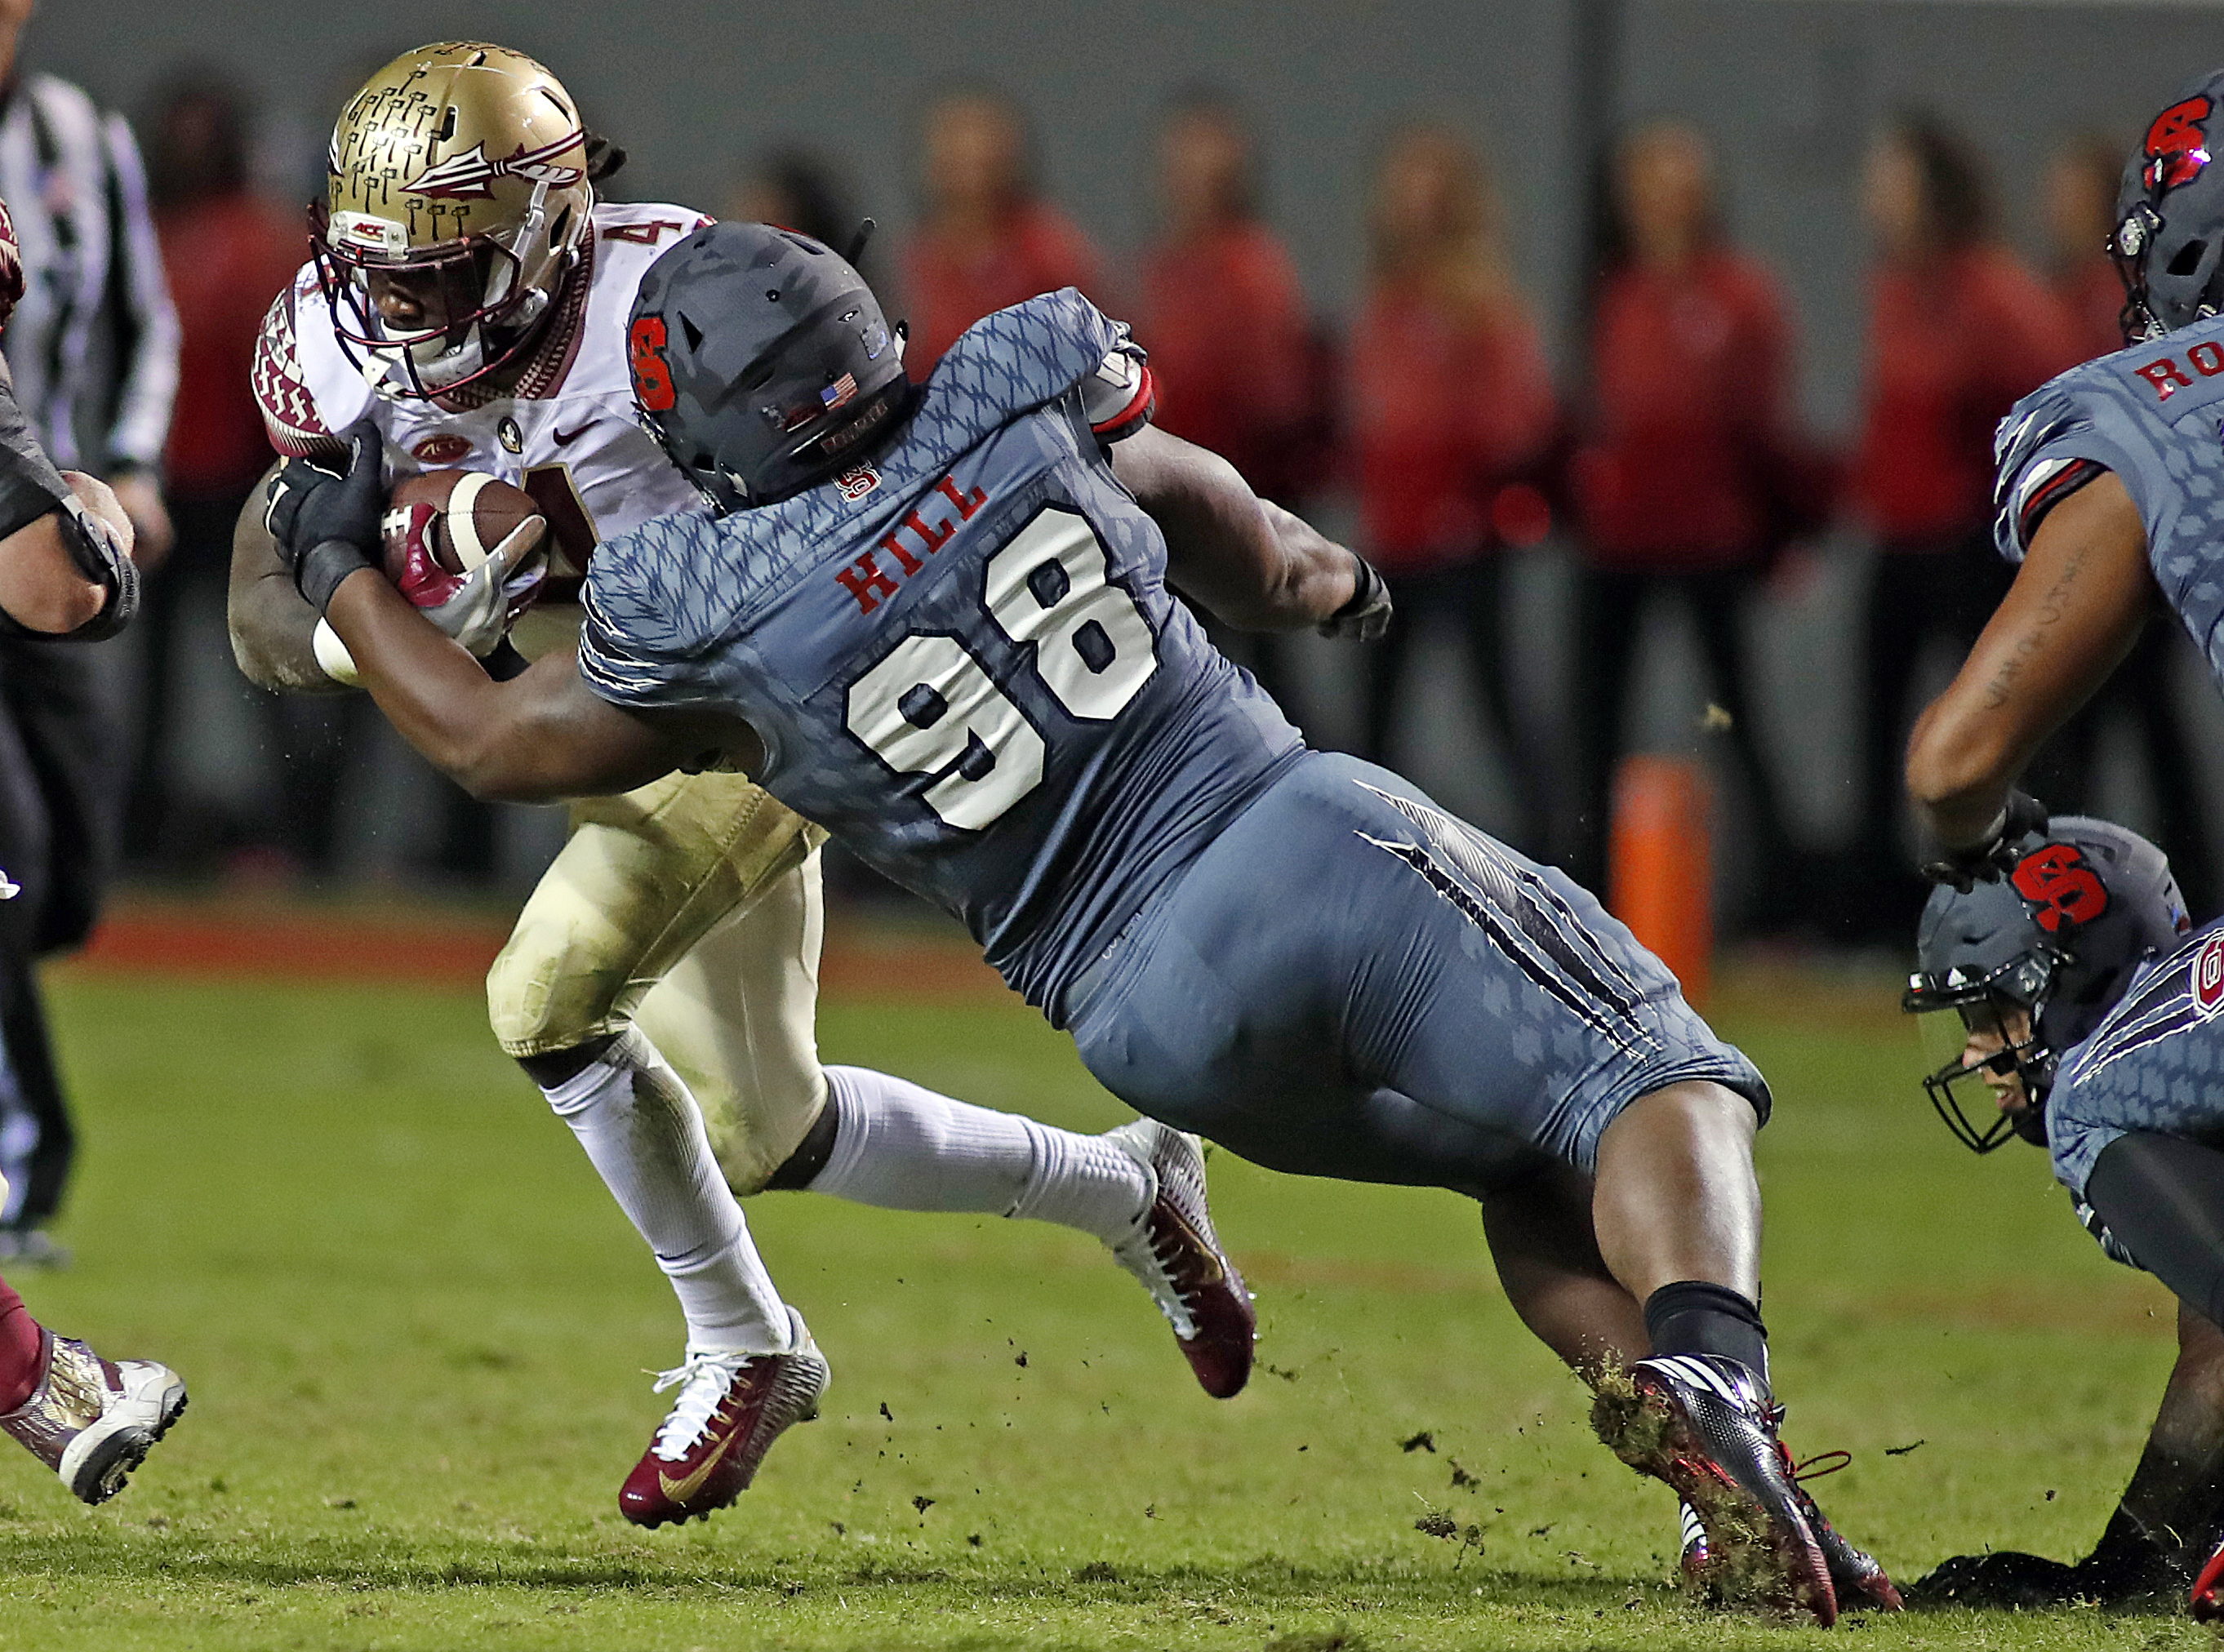 Florida State's Dalvin Cook (4) breaks away from North Carolina State's B.J. Hill (98) during the second half of an NCAA college football game in Raleigh, N.C., Saturday, Nov. 5, 2016. Florida State won 24-20. (AP Photo/Karl B DeBlaker)